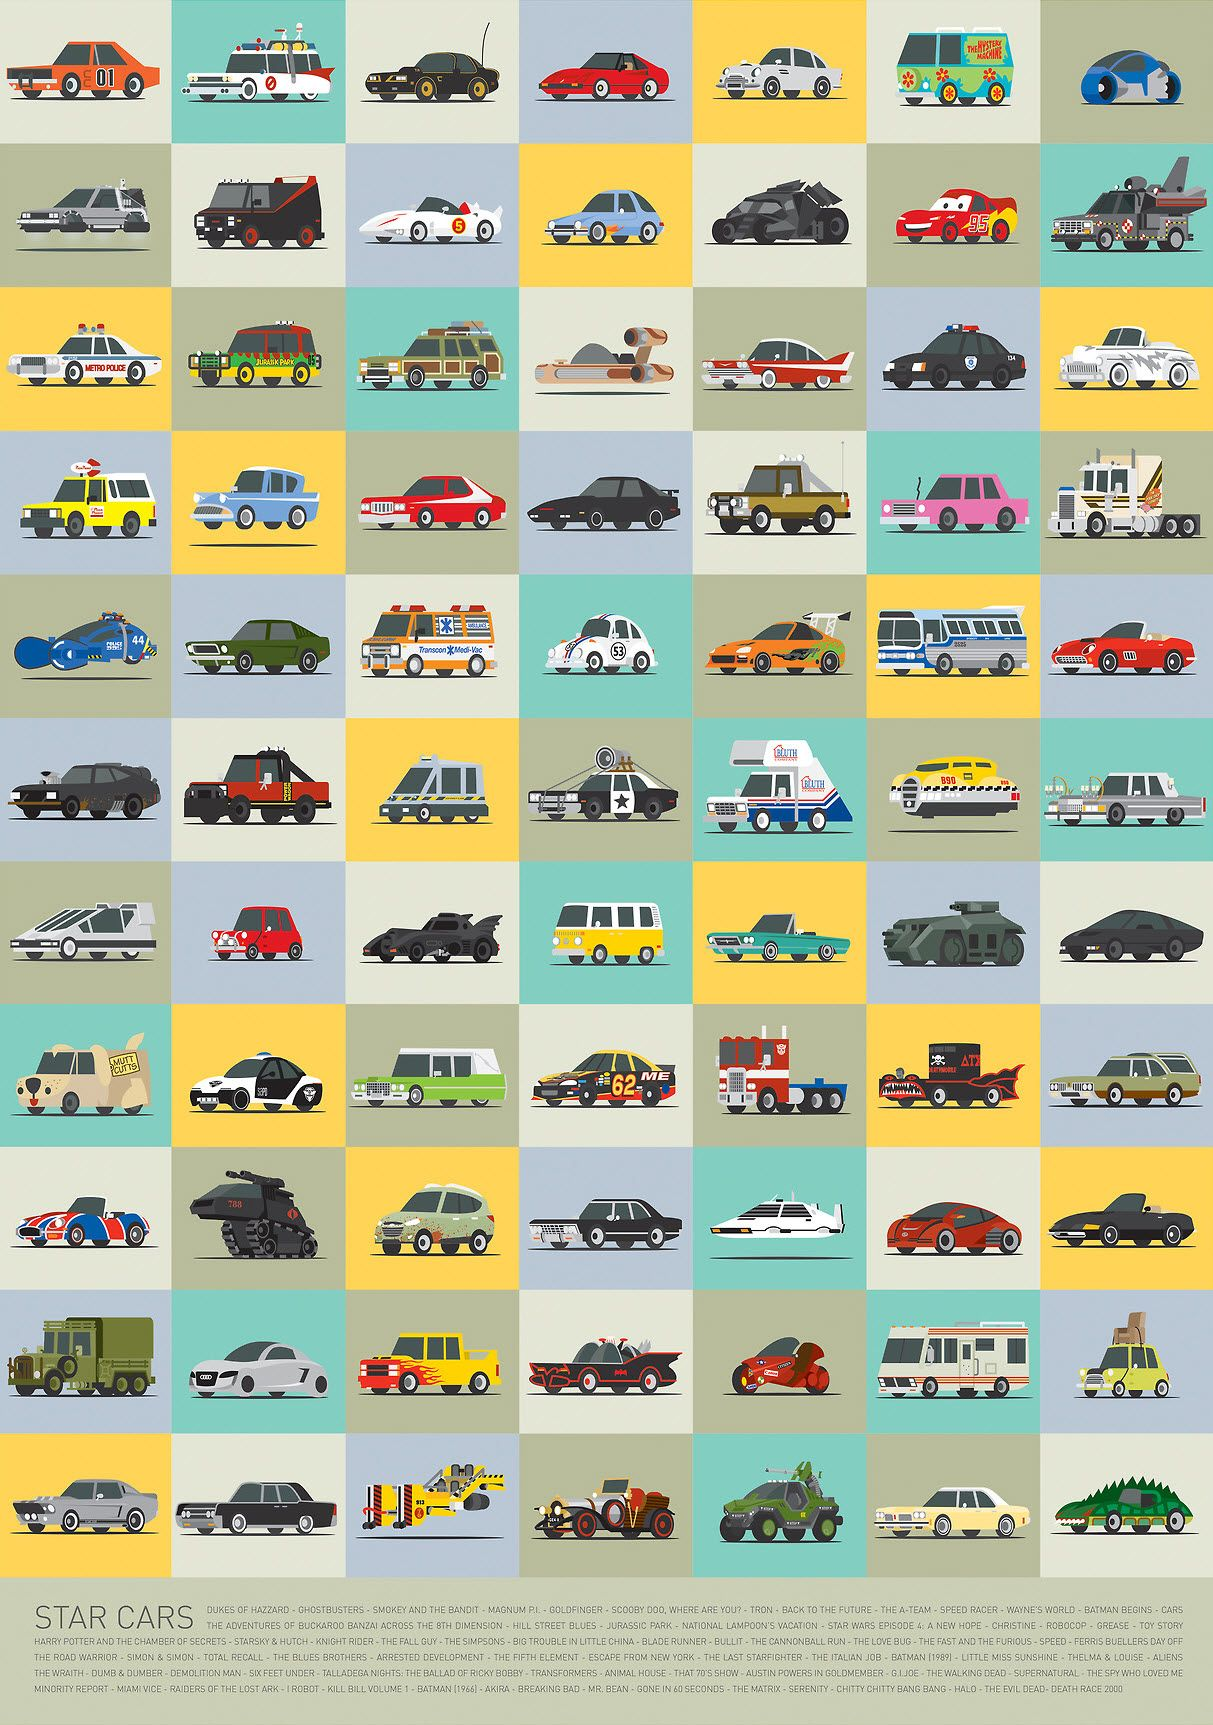 Star Cars Vehicles From Popular Tv Shows And Movies Illustrated